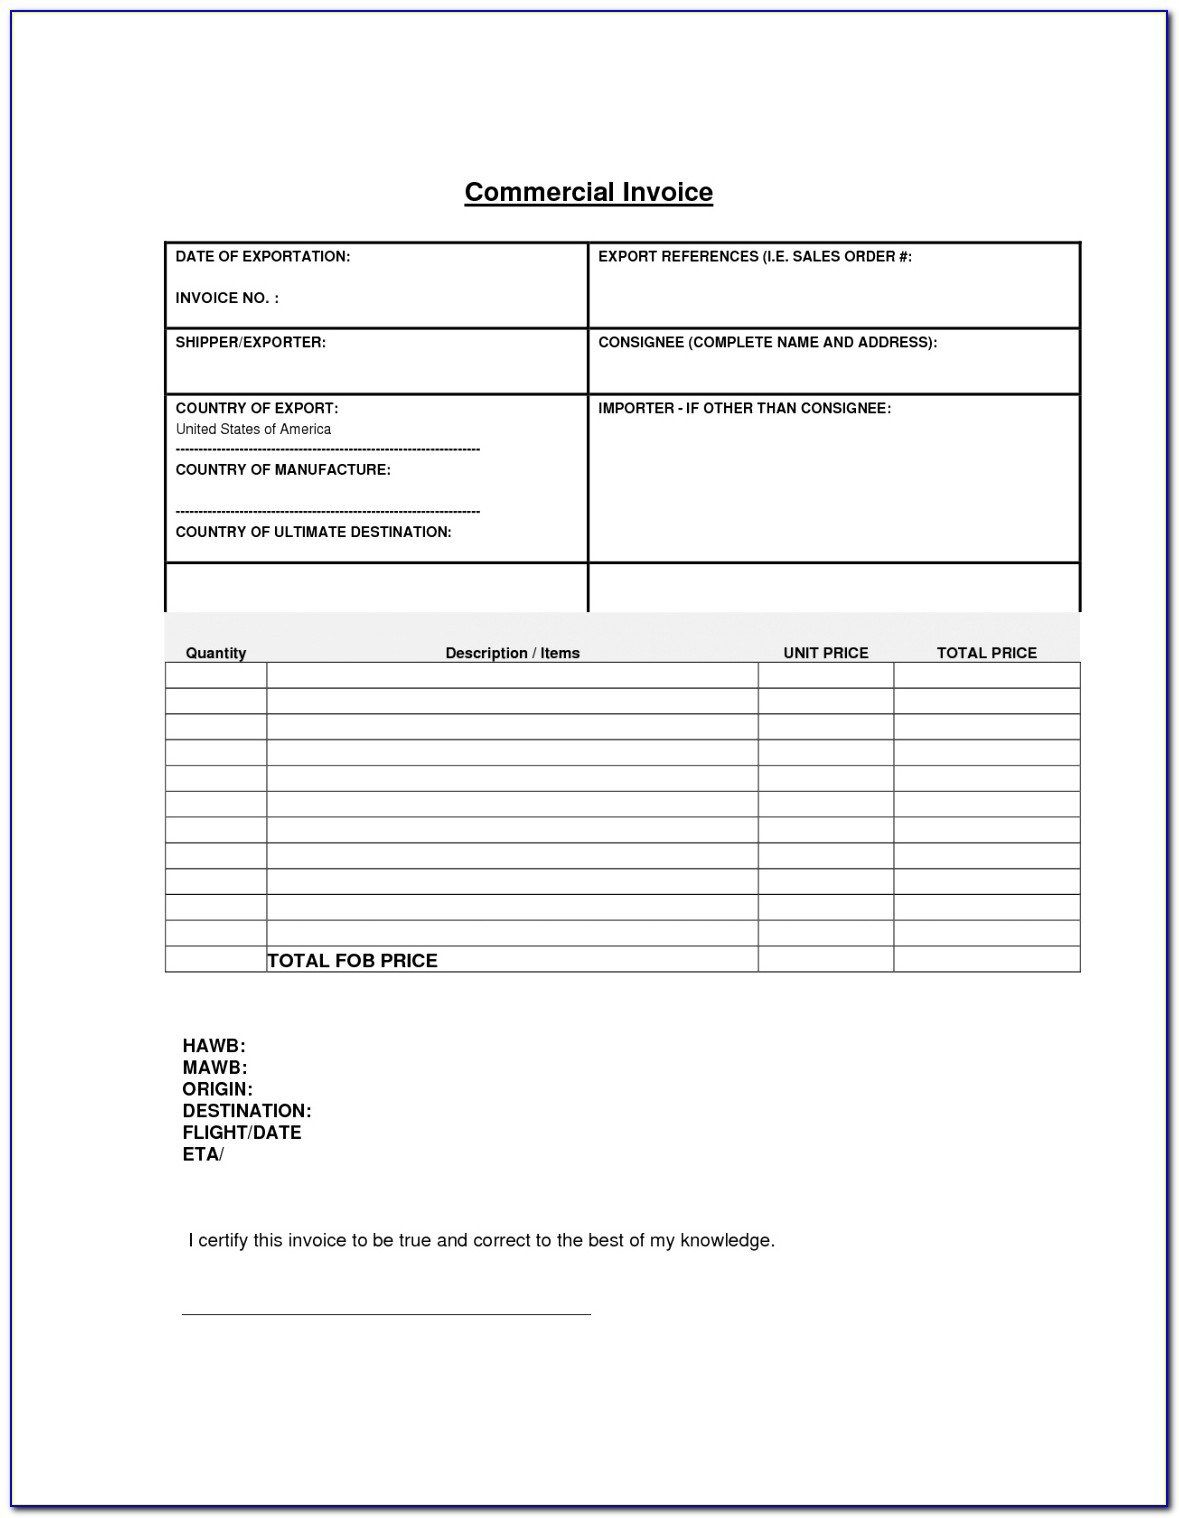 004 Awful Free Tax Invoice Template Excel South Africa Sample Full